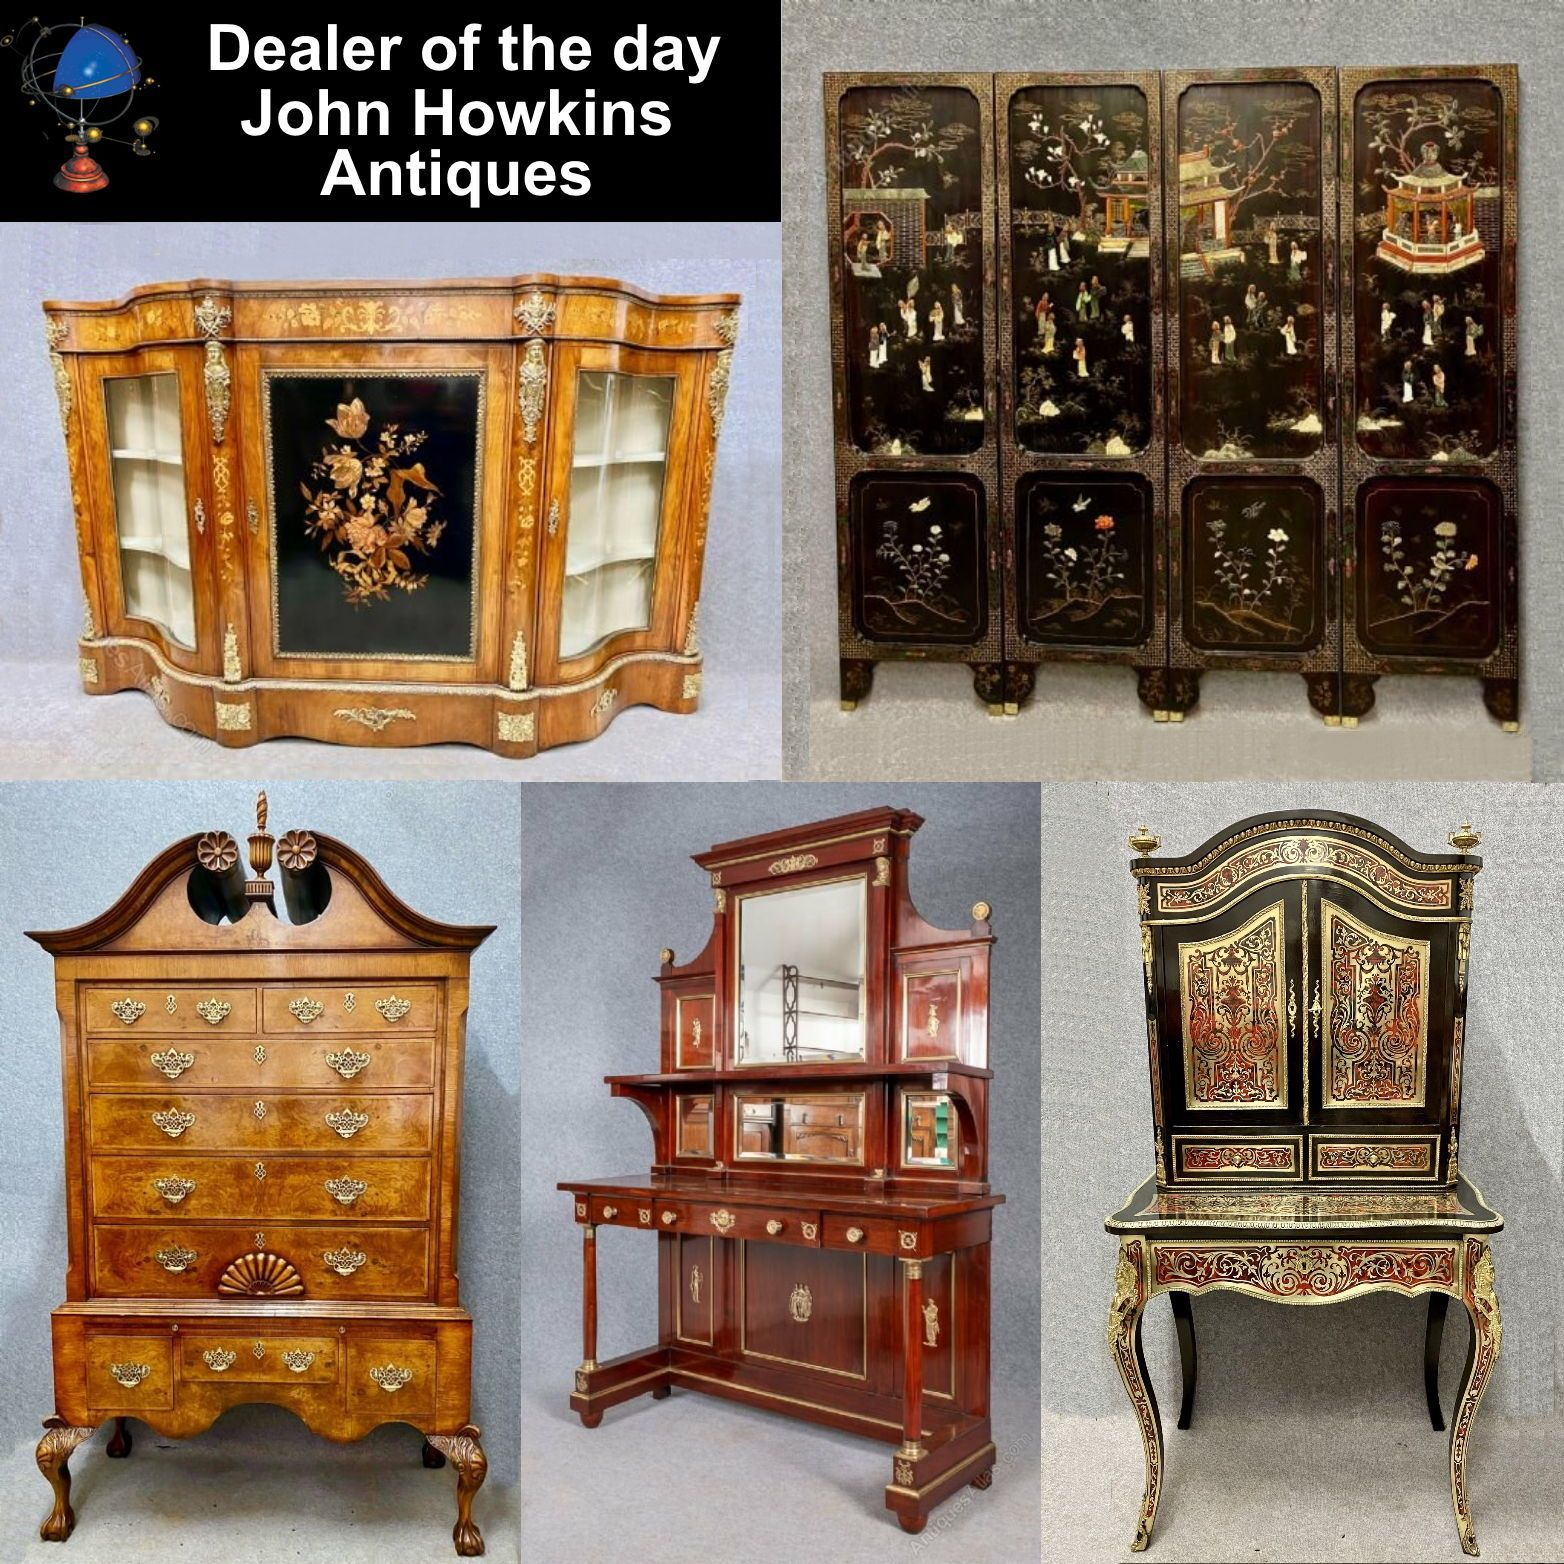 A 3rd generation family business specialising in buying and selling quality antique furniture and decorative items. Warehouse viewing by appointment only, day or evening. #antiquefurniture #credenza #chinesescreen #antiquechest #consoletable #bonheurdujour #writingcabinet #bedroomscreen #bedroomdecor #livingroomdecor